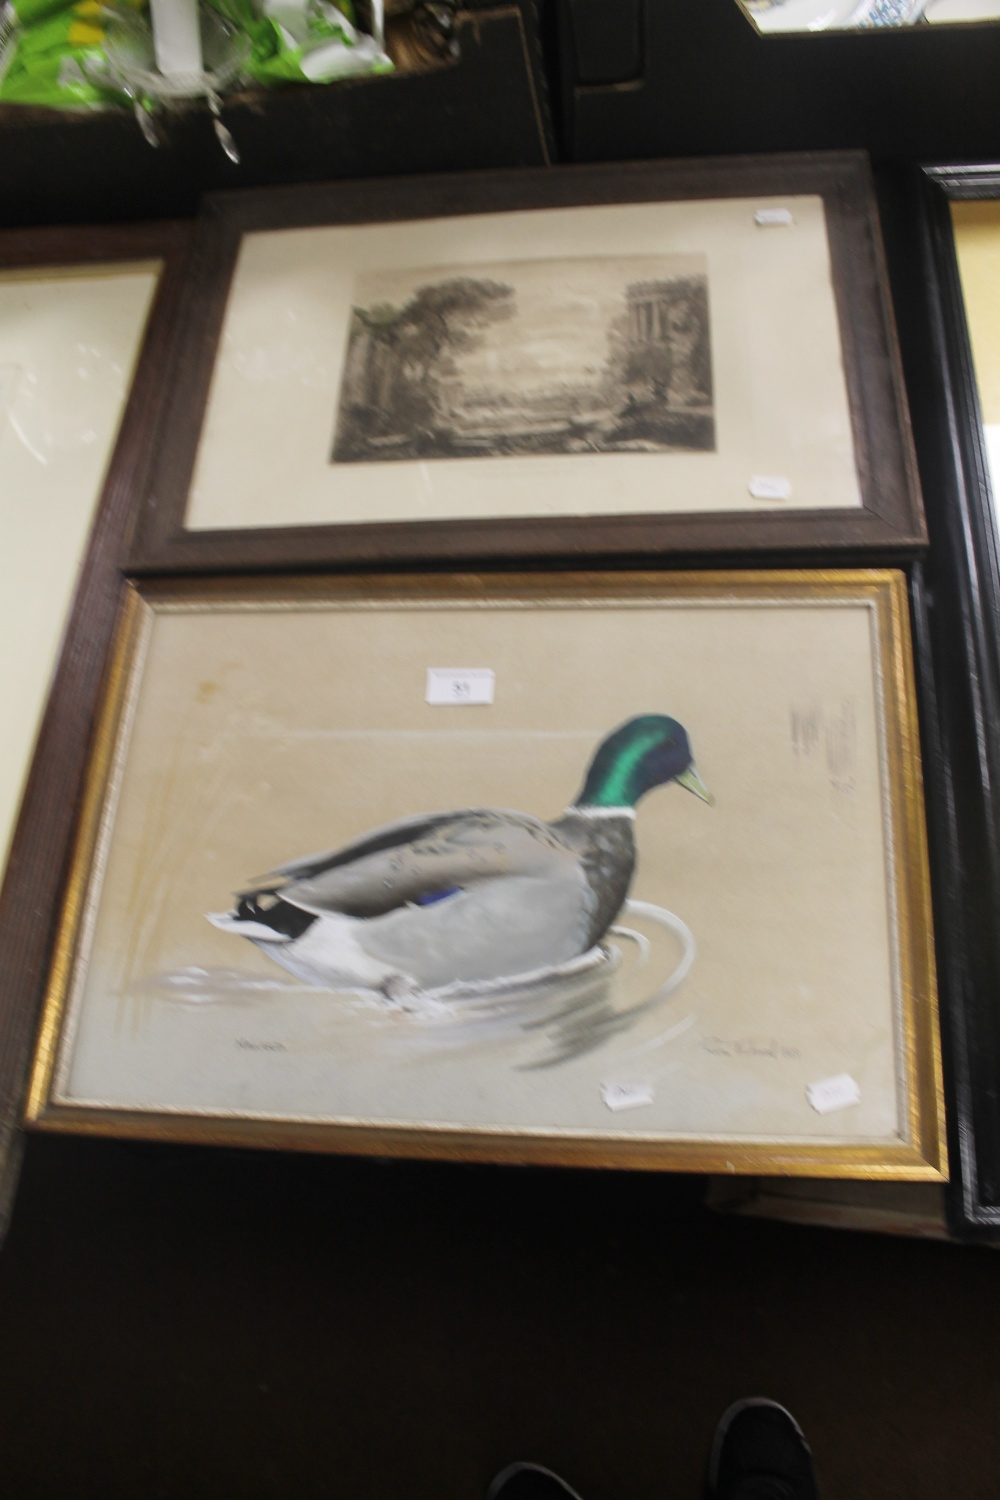 Lot 51 - A FRAMED ENGRAVING TITLED 'BEAUTIES OF CLAUDE LORRAINE' PLATE 18 TOGETHER WITH A PENCIL SIGNED